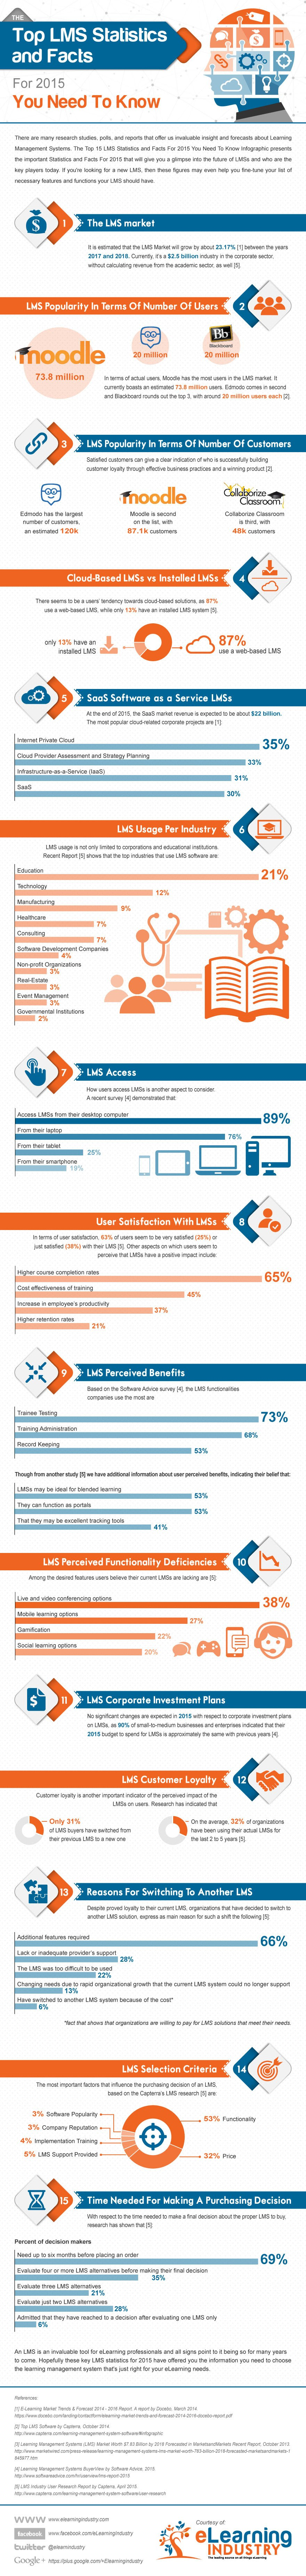 Top LMS Stats and Facts For 2015 Infographic